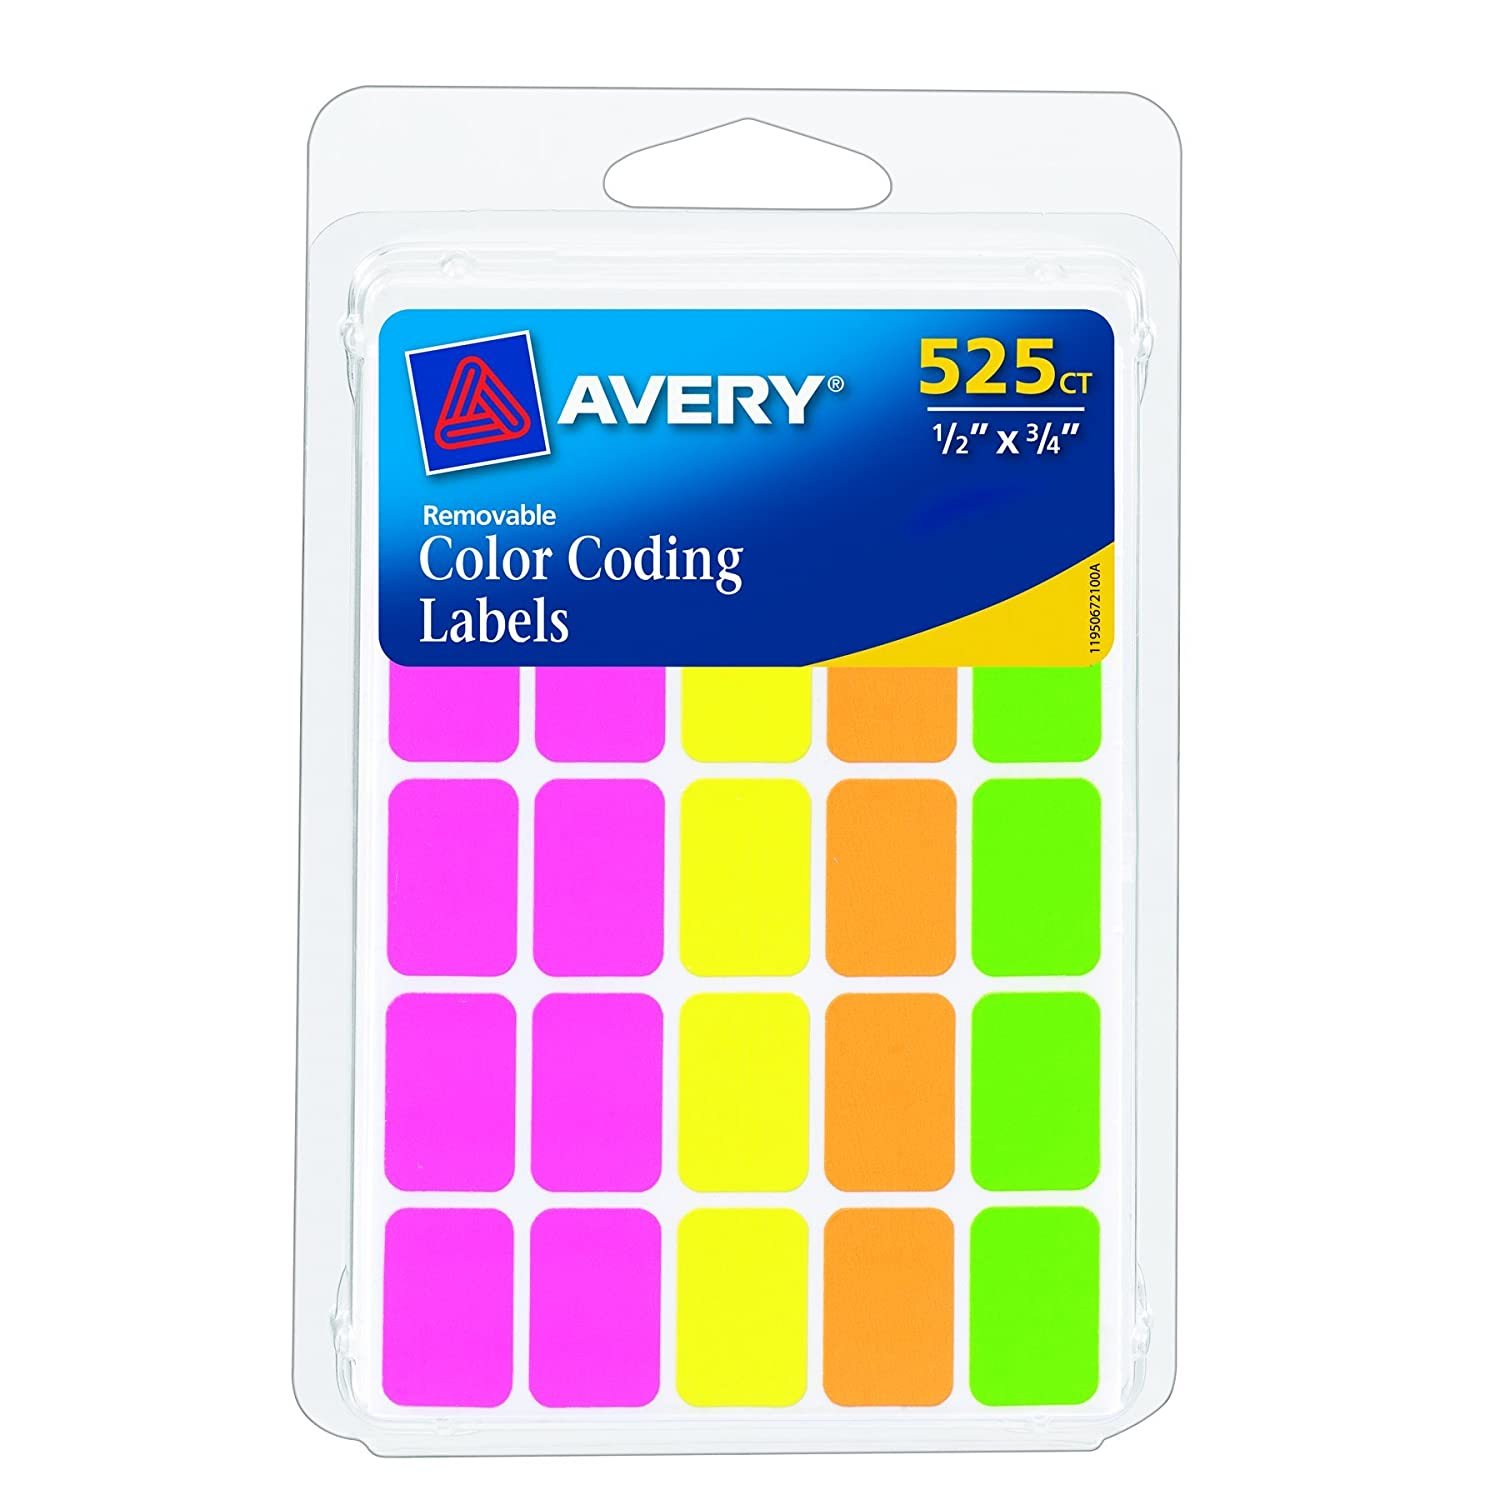 Custom Card Template avery stickers : Avery Color Coding Labels 525ct on Sale for $1.68 (Reg. $3 ...